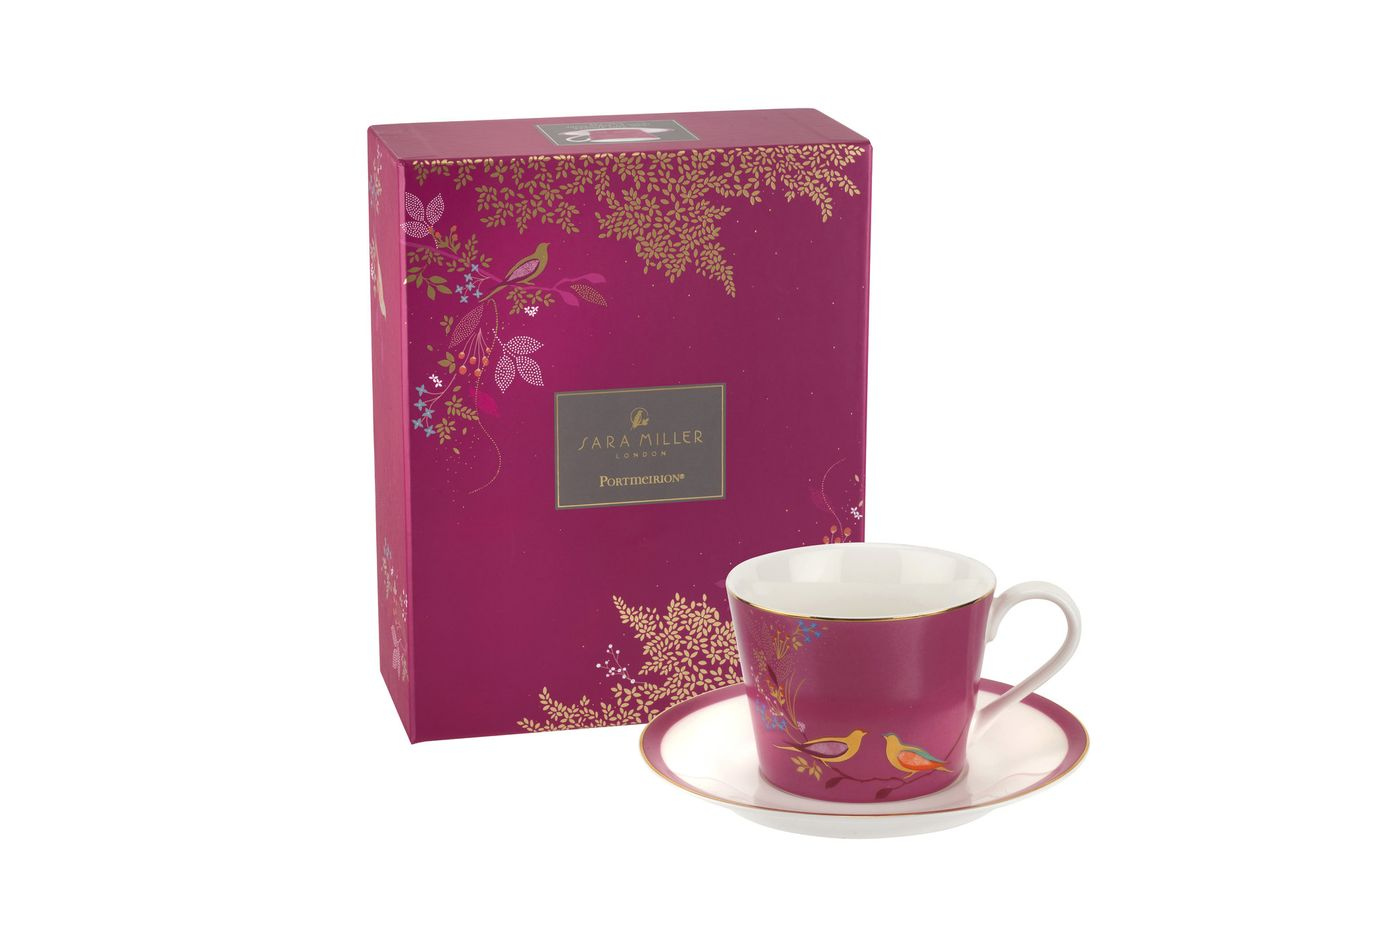 Sara Miller London for Portmeirion Chelsea Collection Teacup & Saucer Pink 0.2l thumb 2